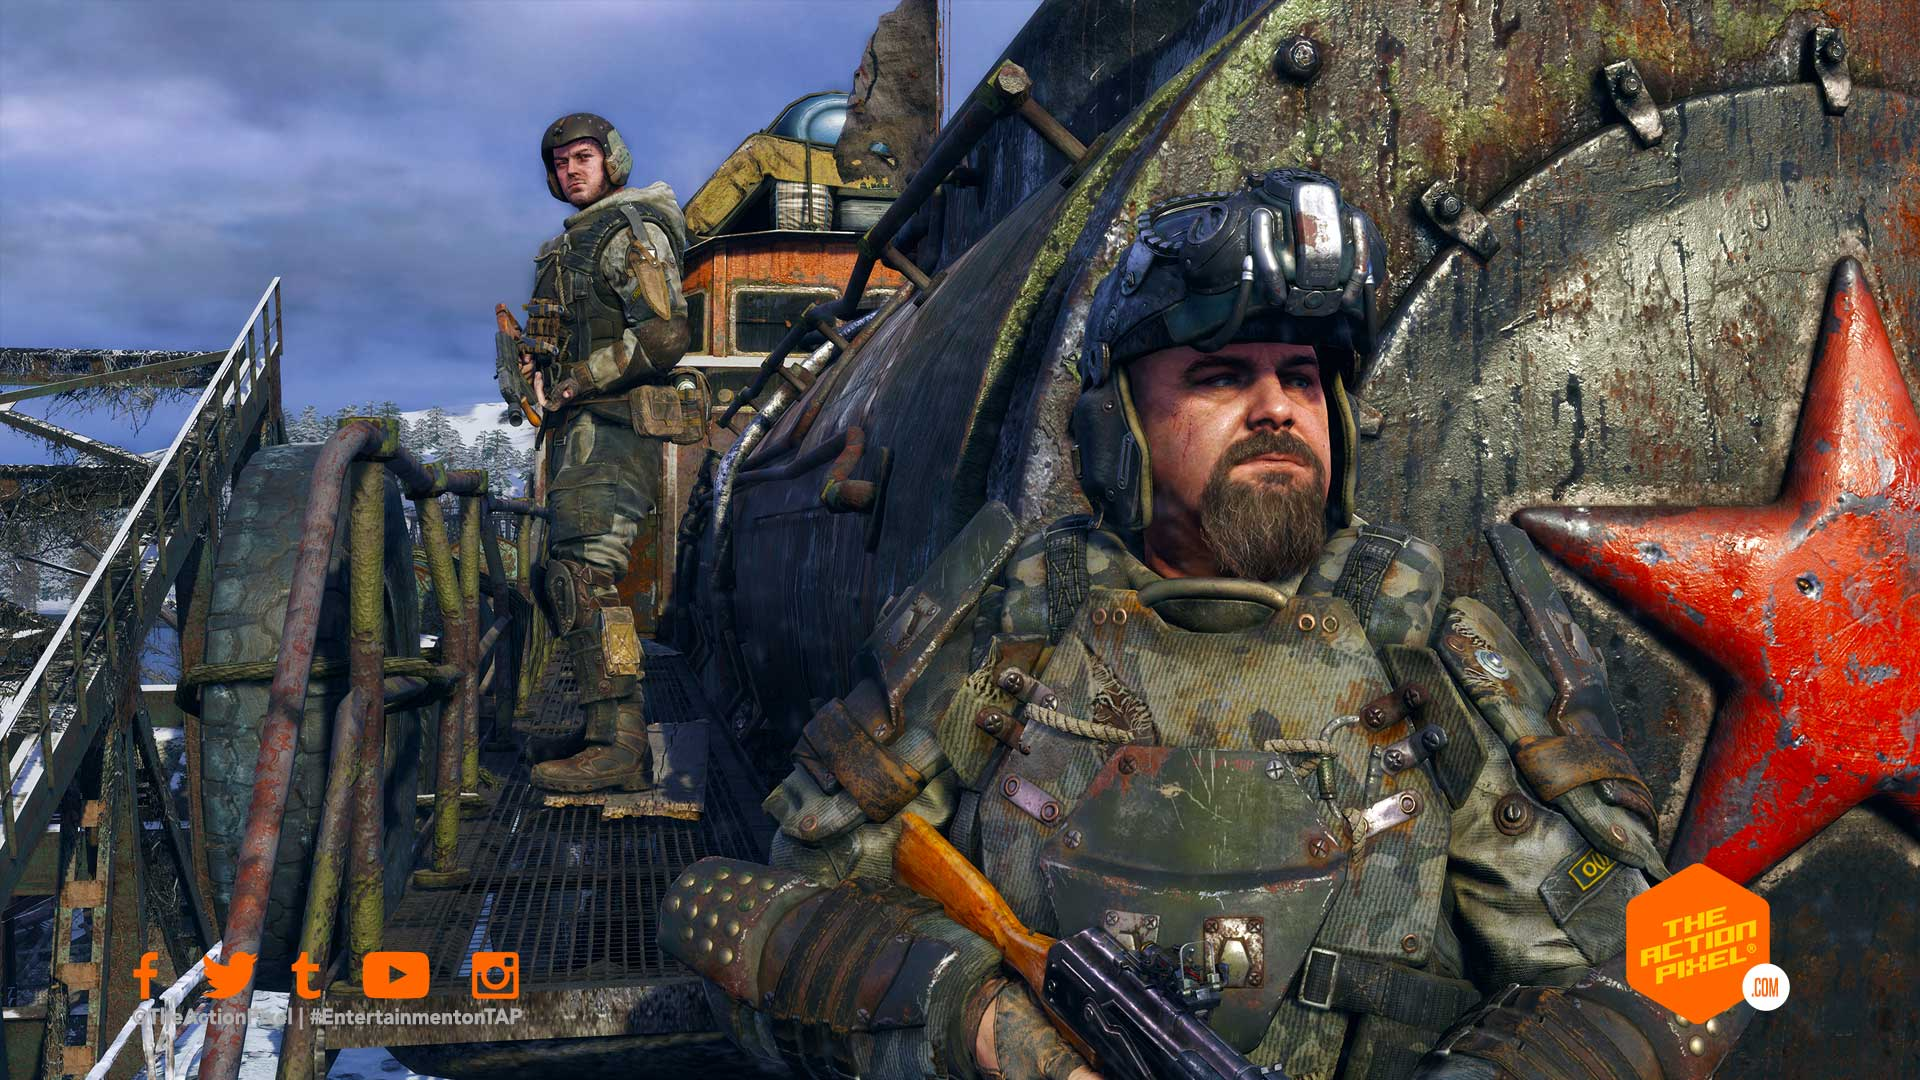 metro exodus, 4A games, deep silver games, deep silver, xbox series s, xbox series x, playstation 5, ps5 ,playstation, dual sense, metro exodus nex gen, metro exodus new features, entertainment on tap, featured, the action pixel,